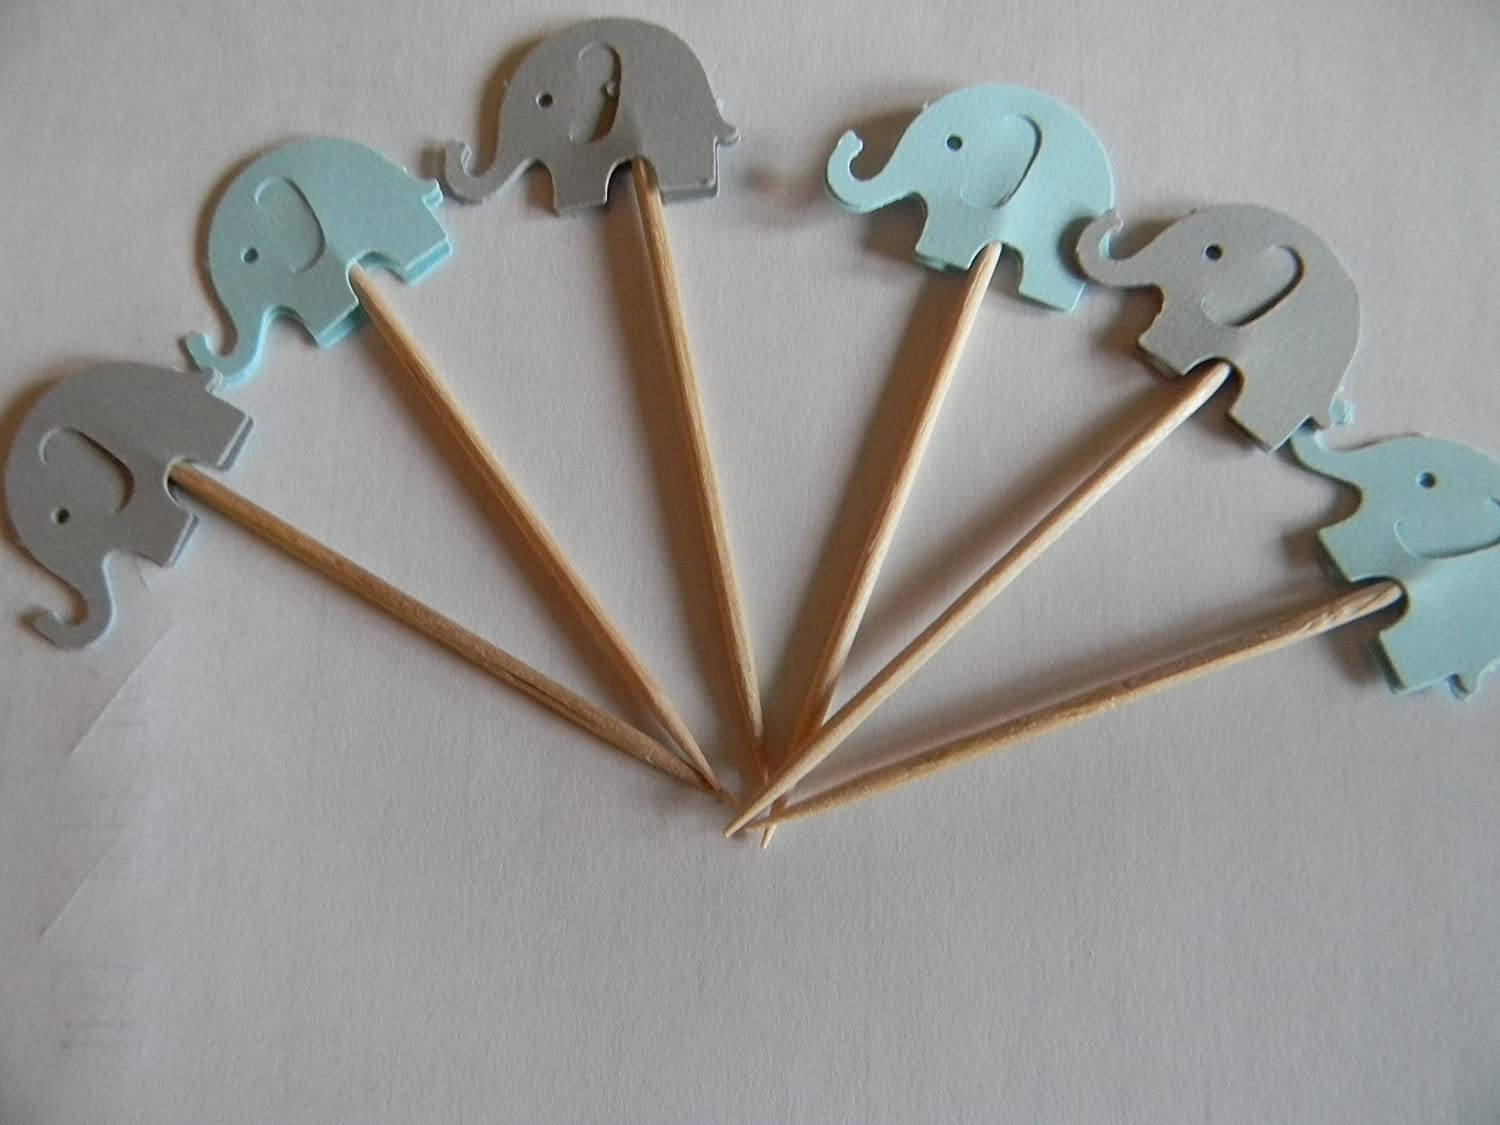 24 mixed blue and gray elephants cupcake toppers food picks baby shower decor